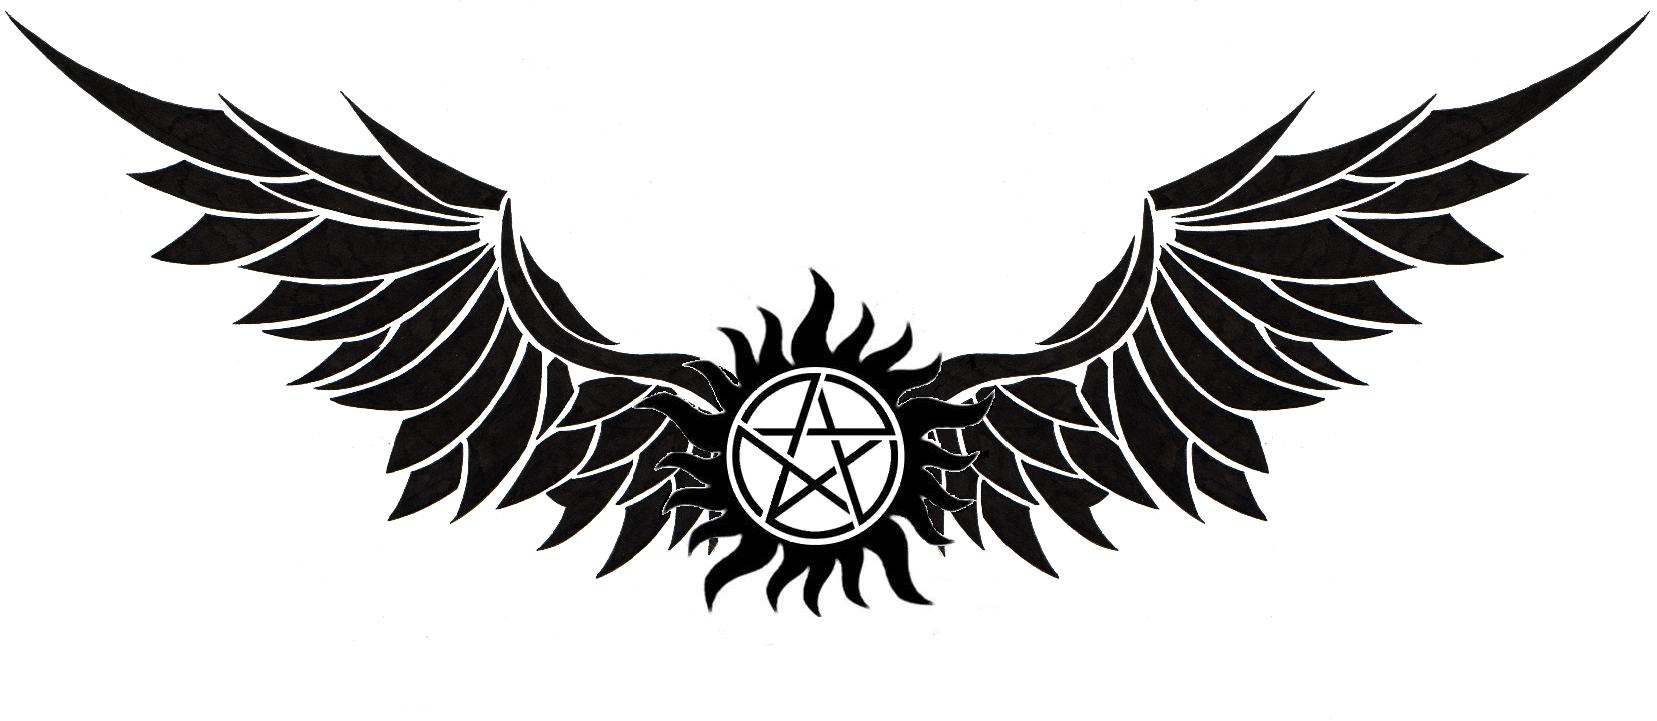 supernatural logo tattoos - 1657×721